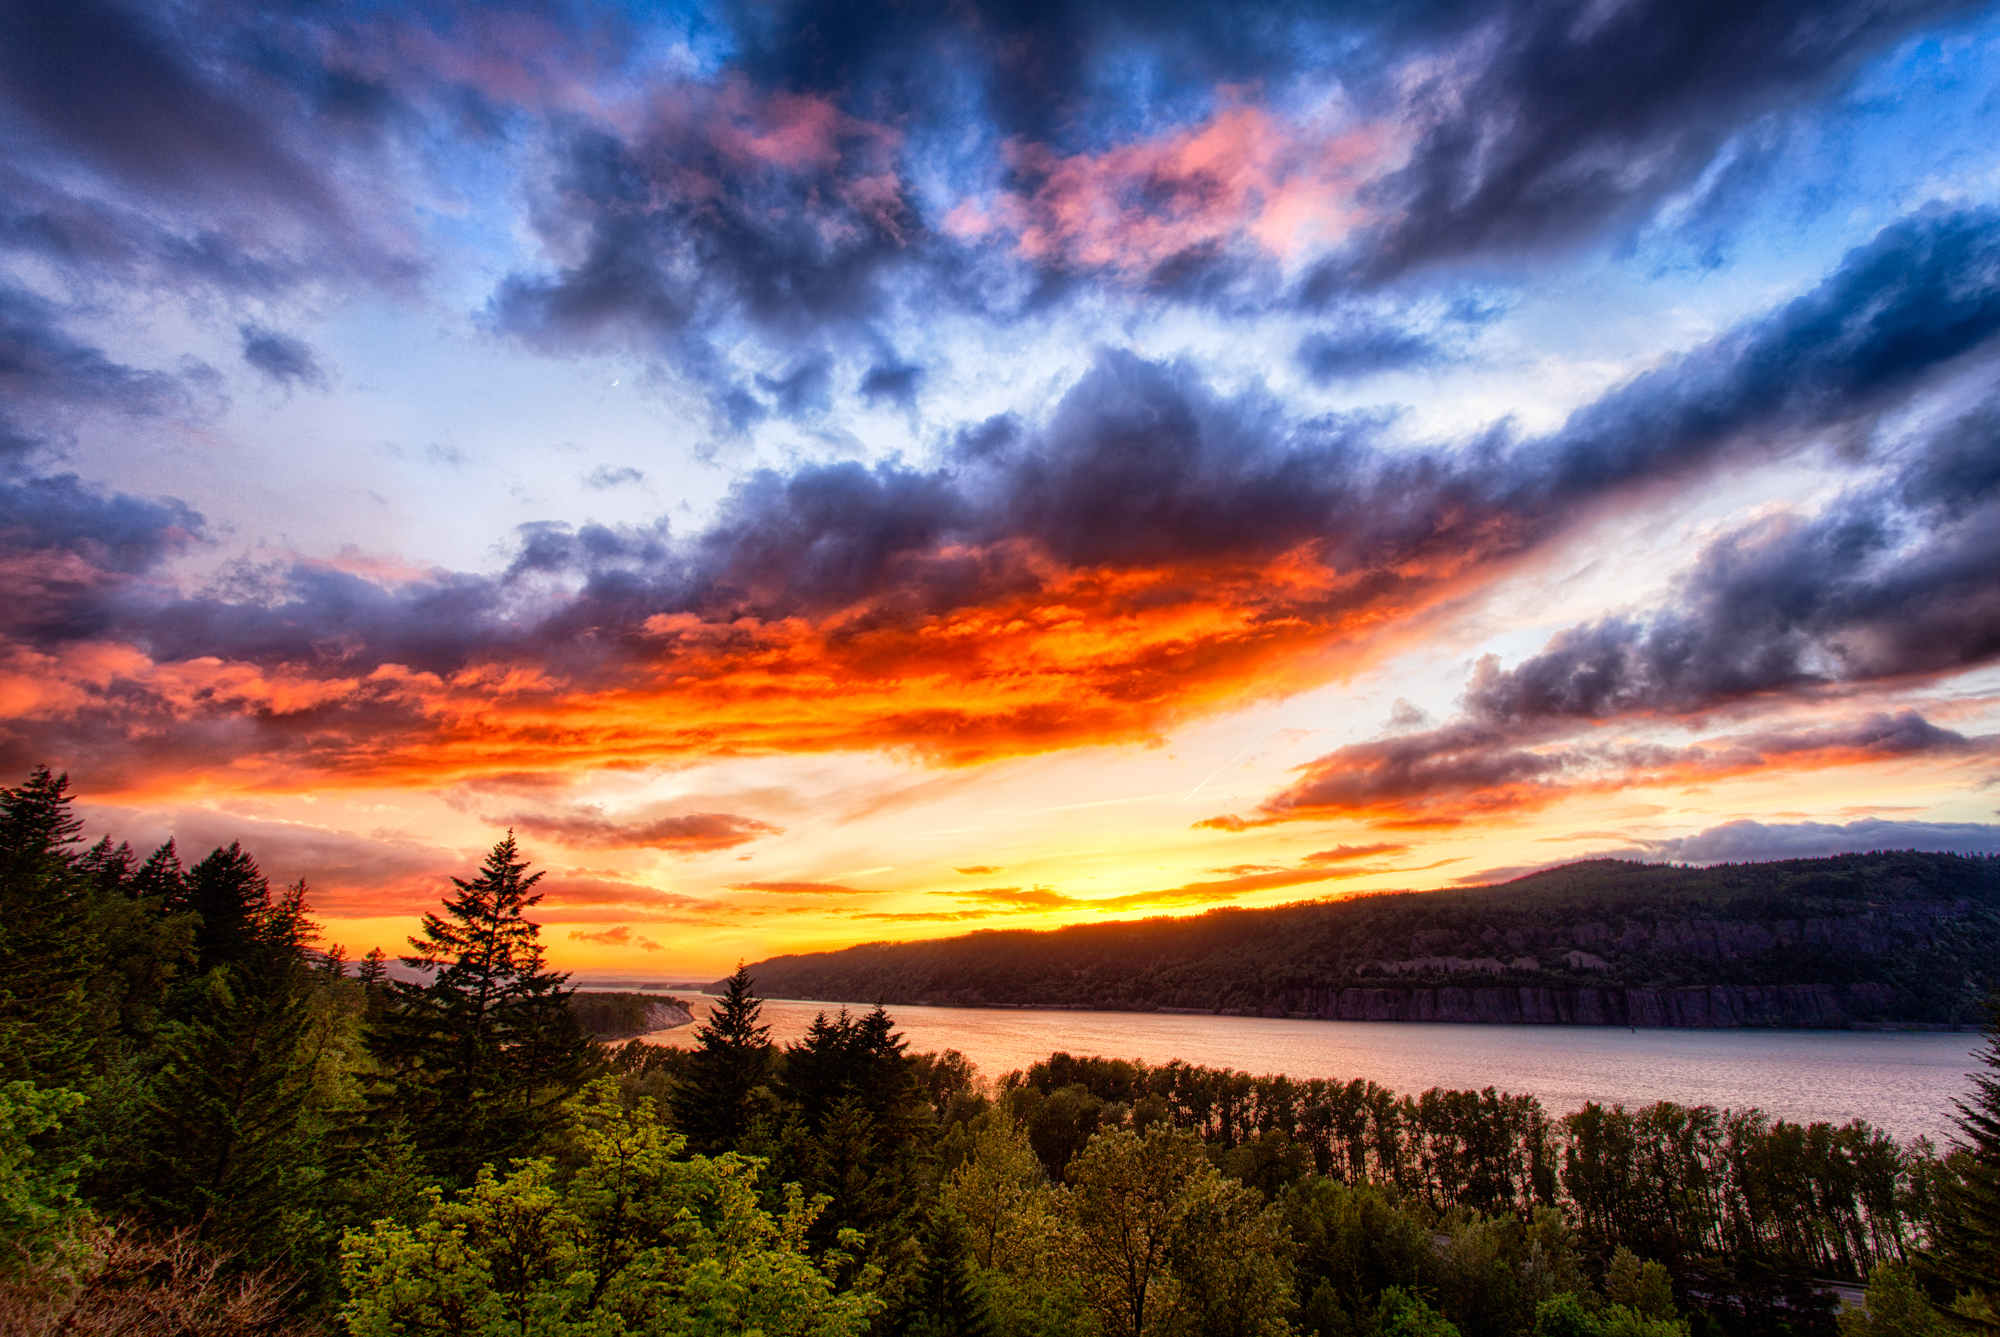 Columbia River Gorge Sunset By Michael Matti Flickr Photo Sharing